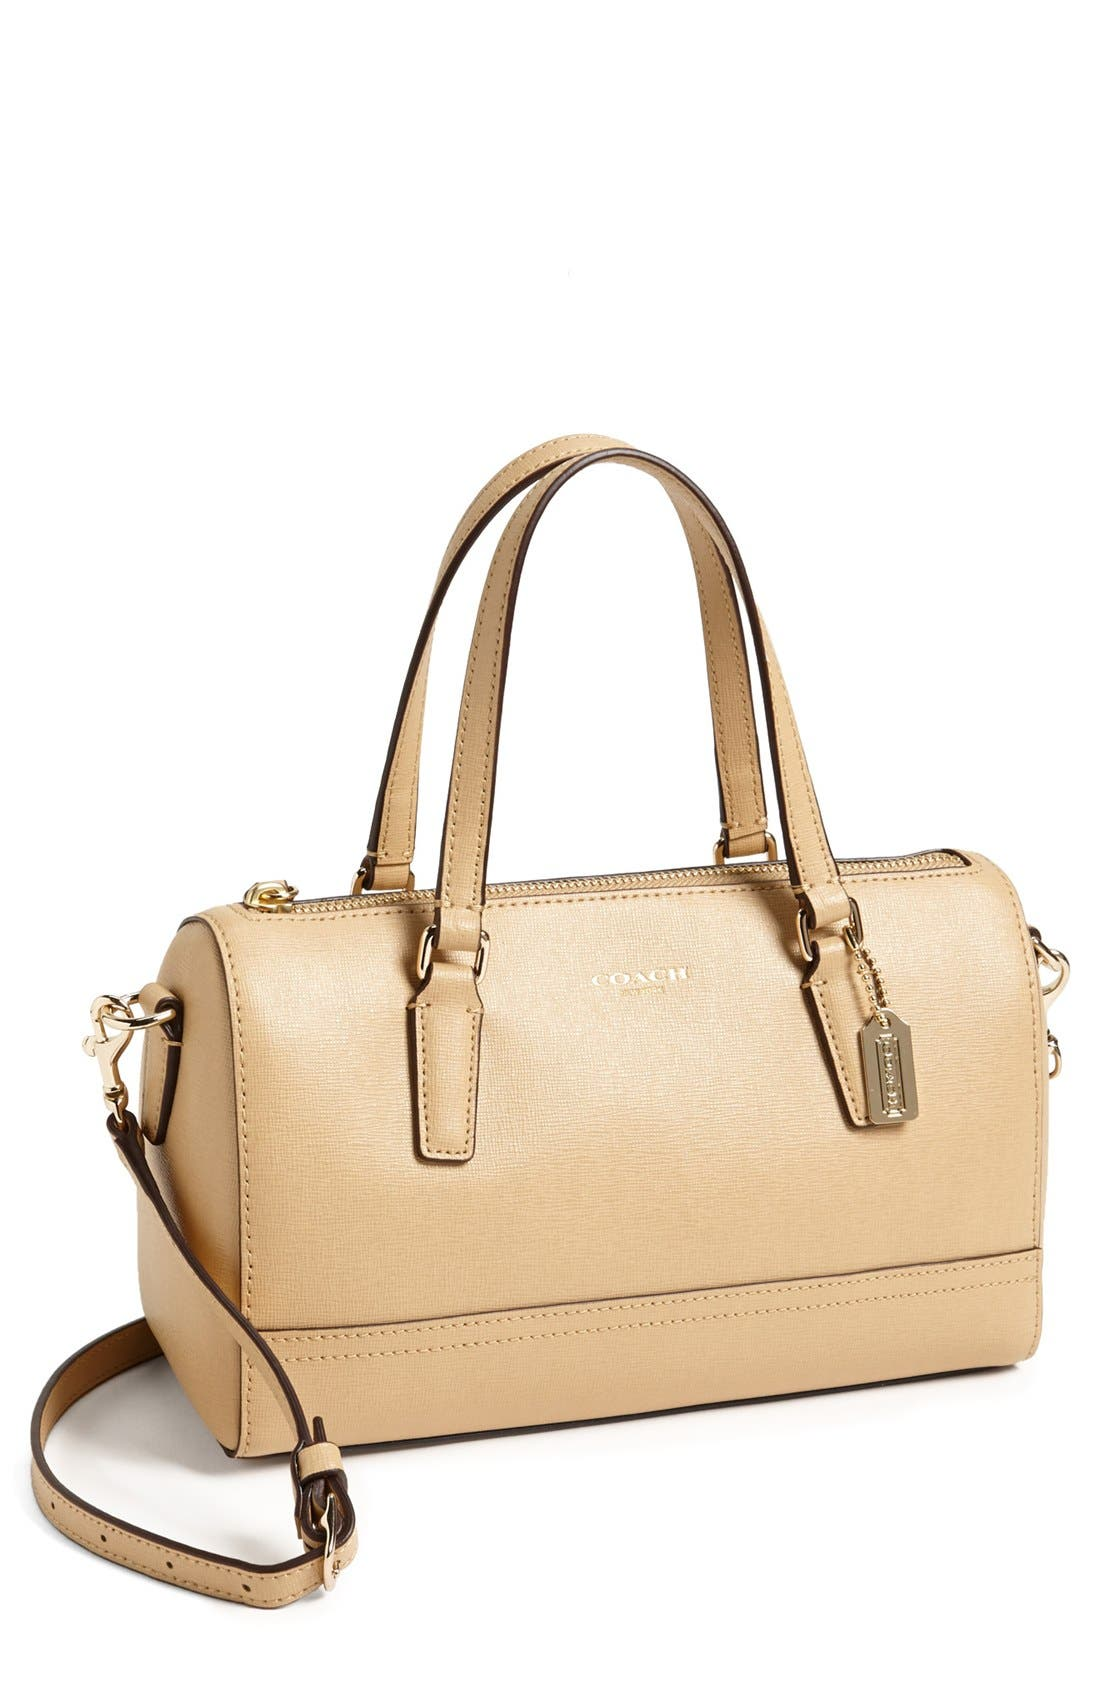 Main Image - COACH 'Mini' Saffiano Leather Satchel